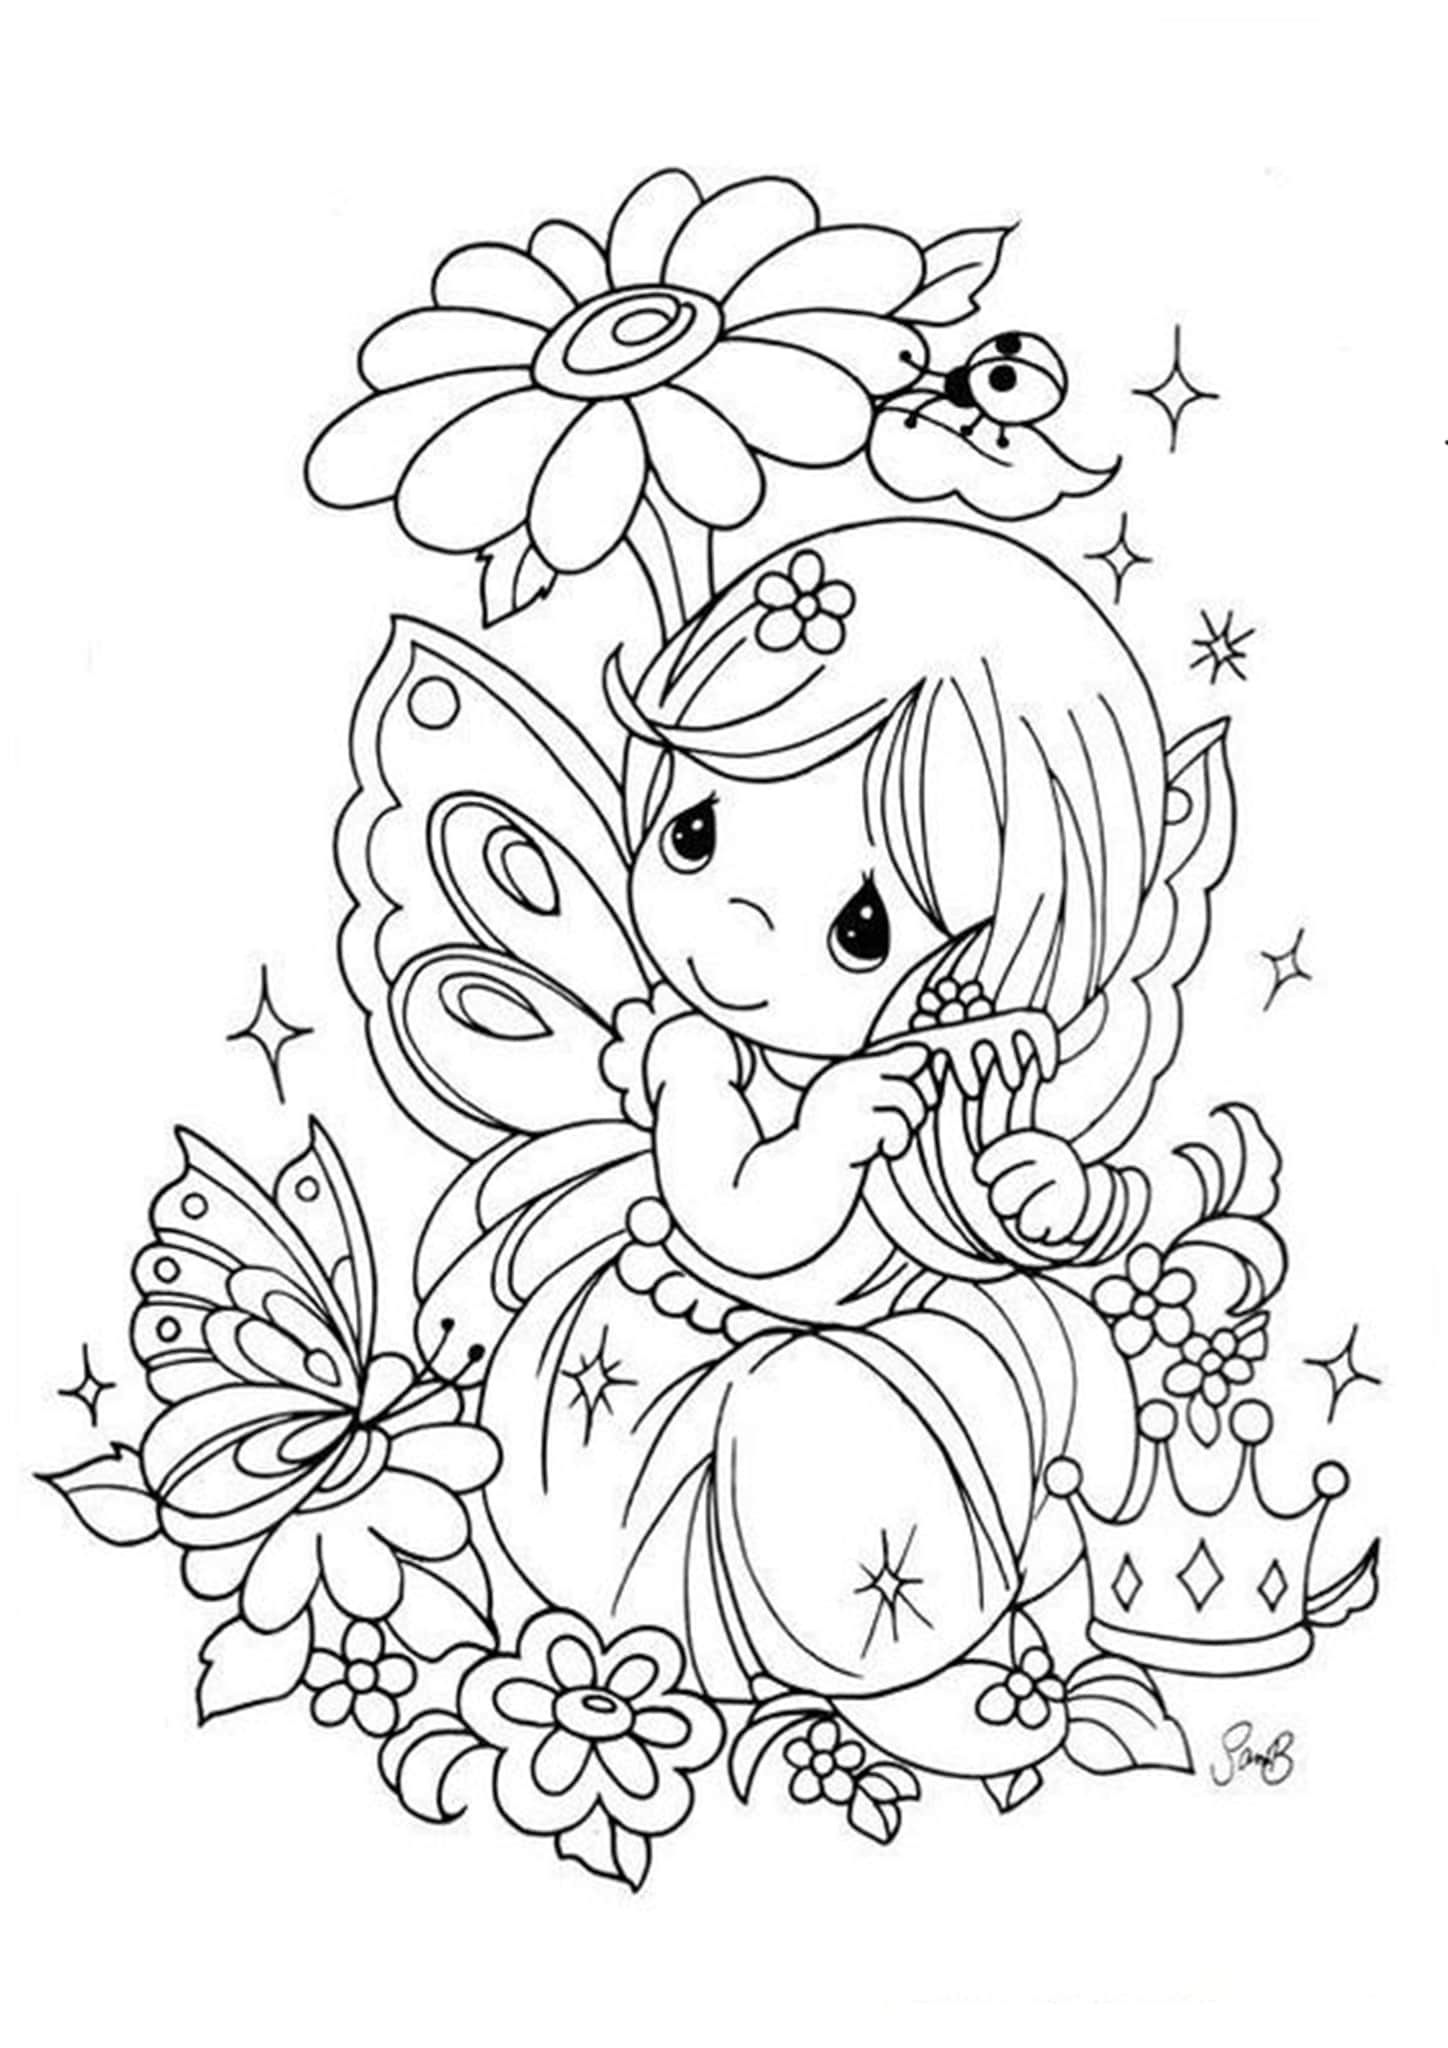 Free & Easy To Print Fairy Coloring Pages - Tulamama